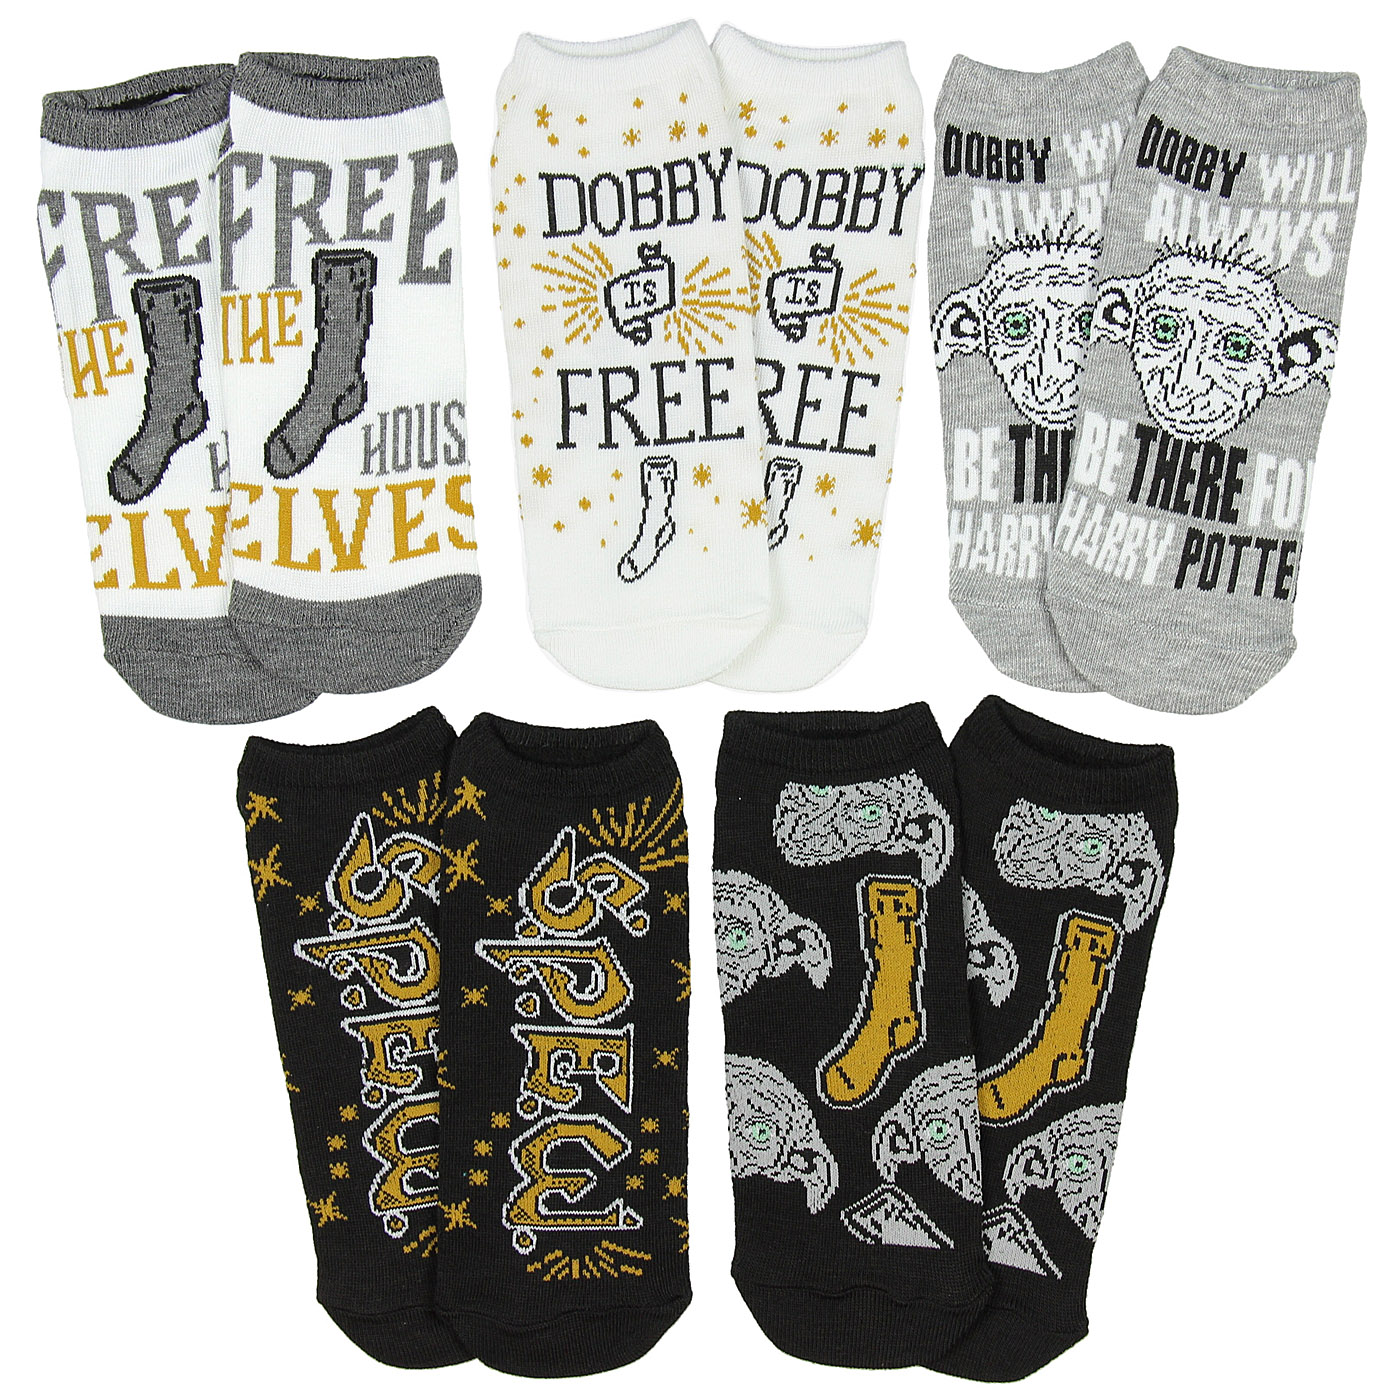 The Wizarding World of Harry Potter Dobby The House Elf No-Show Ankle Socks 5 Pack